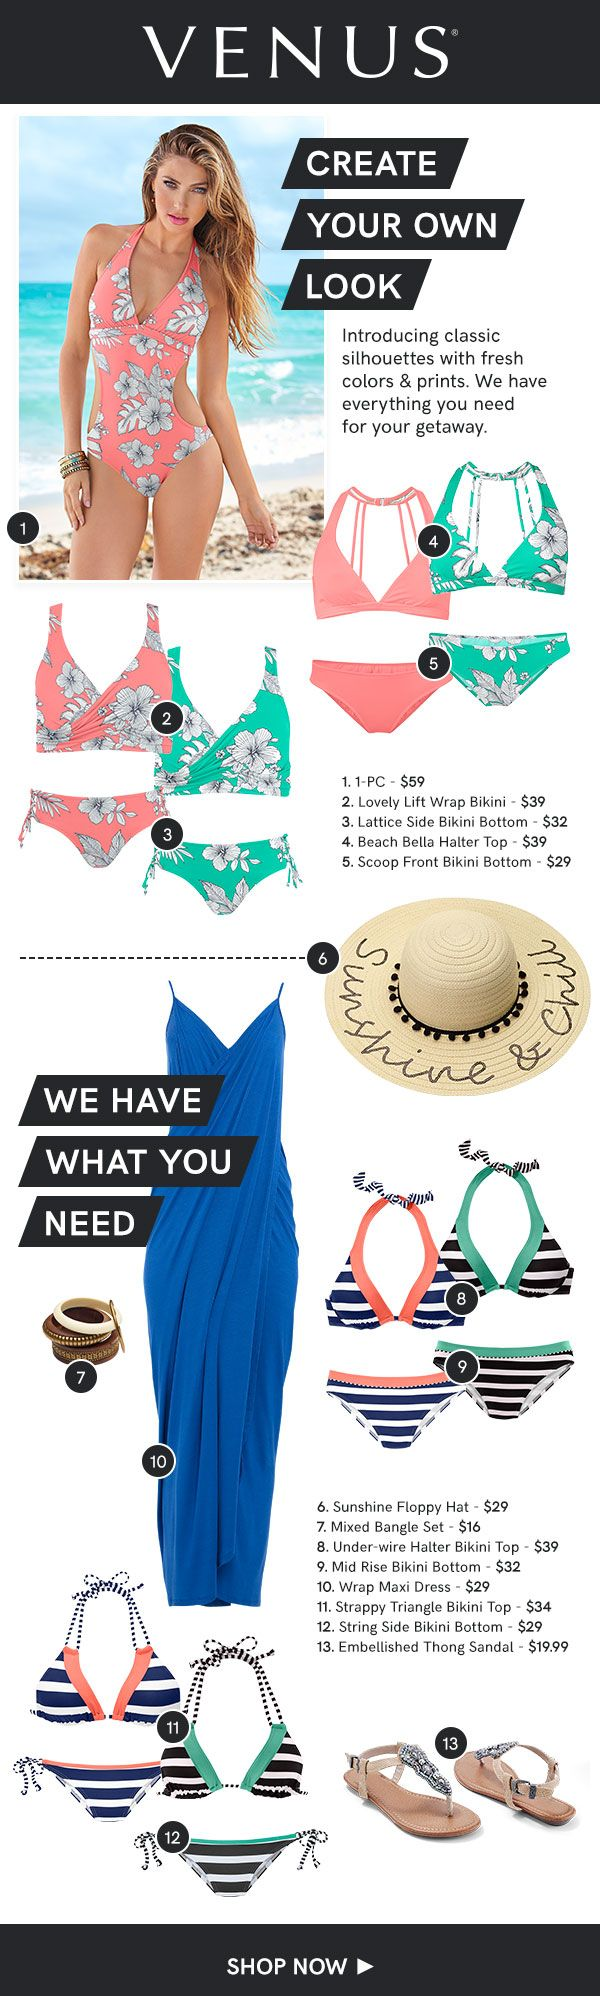 Mix and Match styles, solids, and prints to create your own beach-ready look! #venusswimwear #swimwear